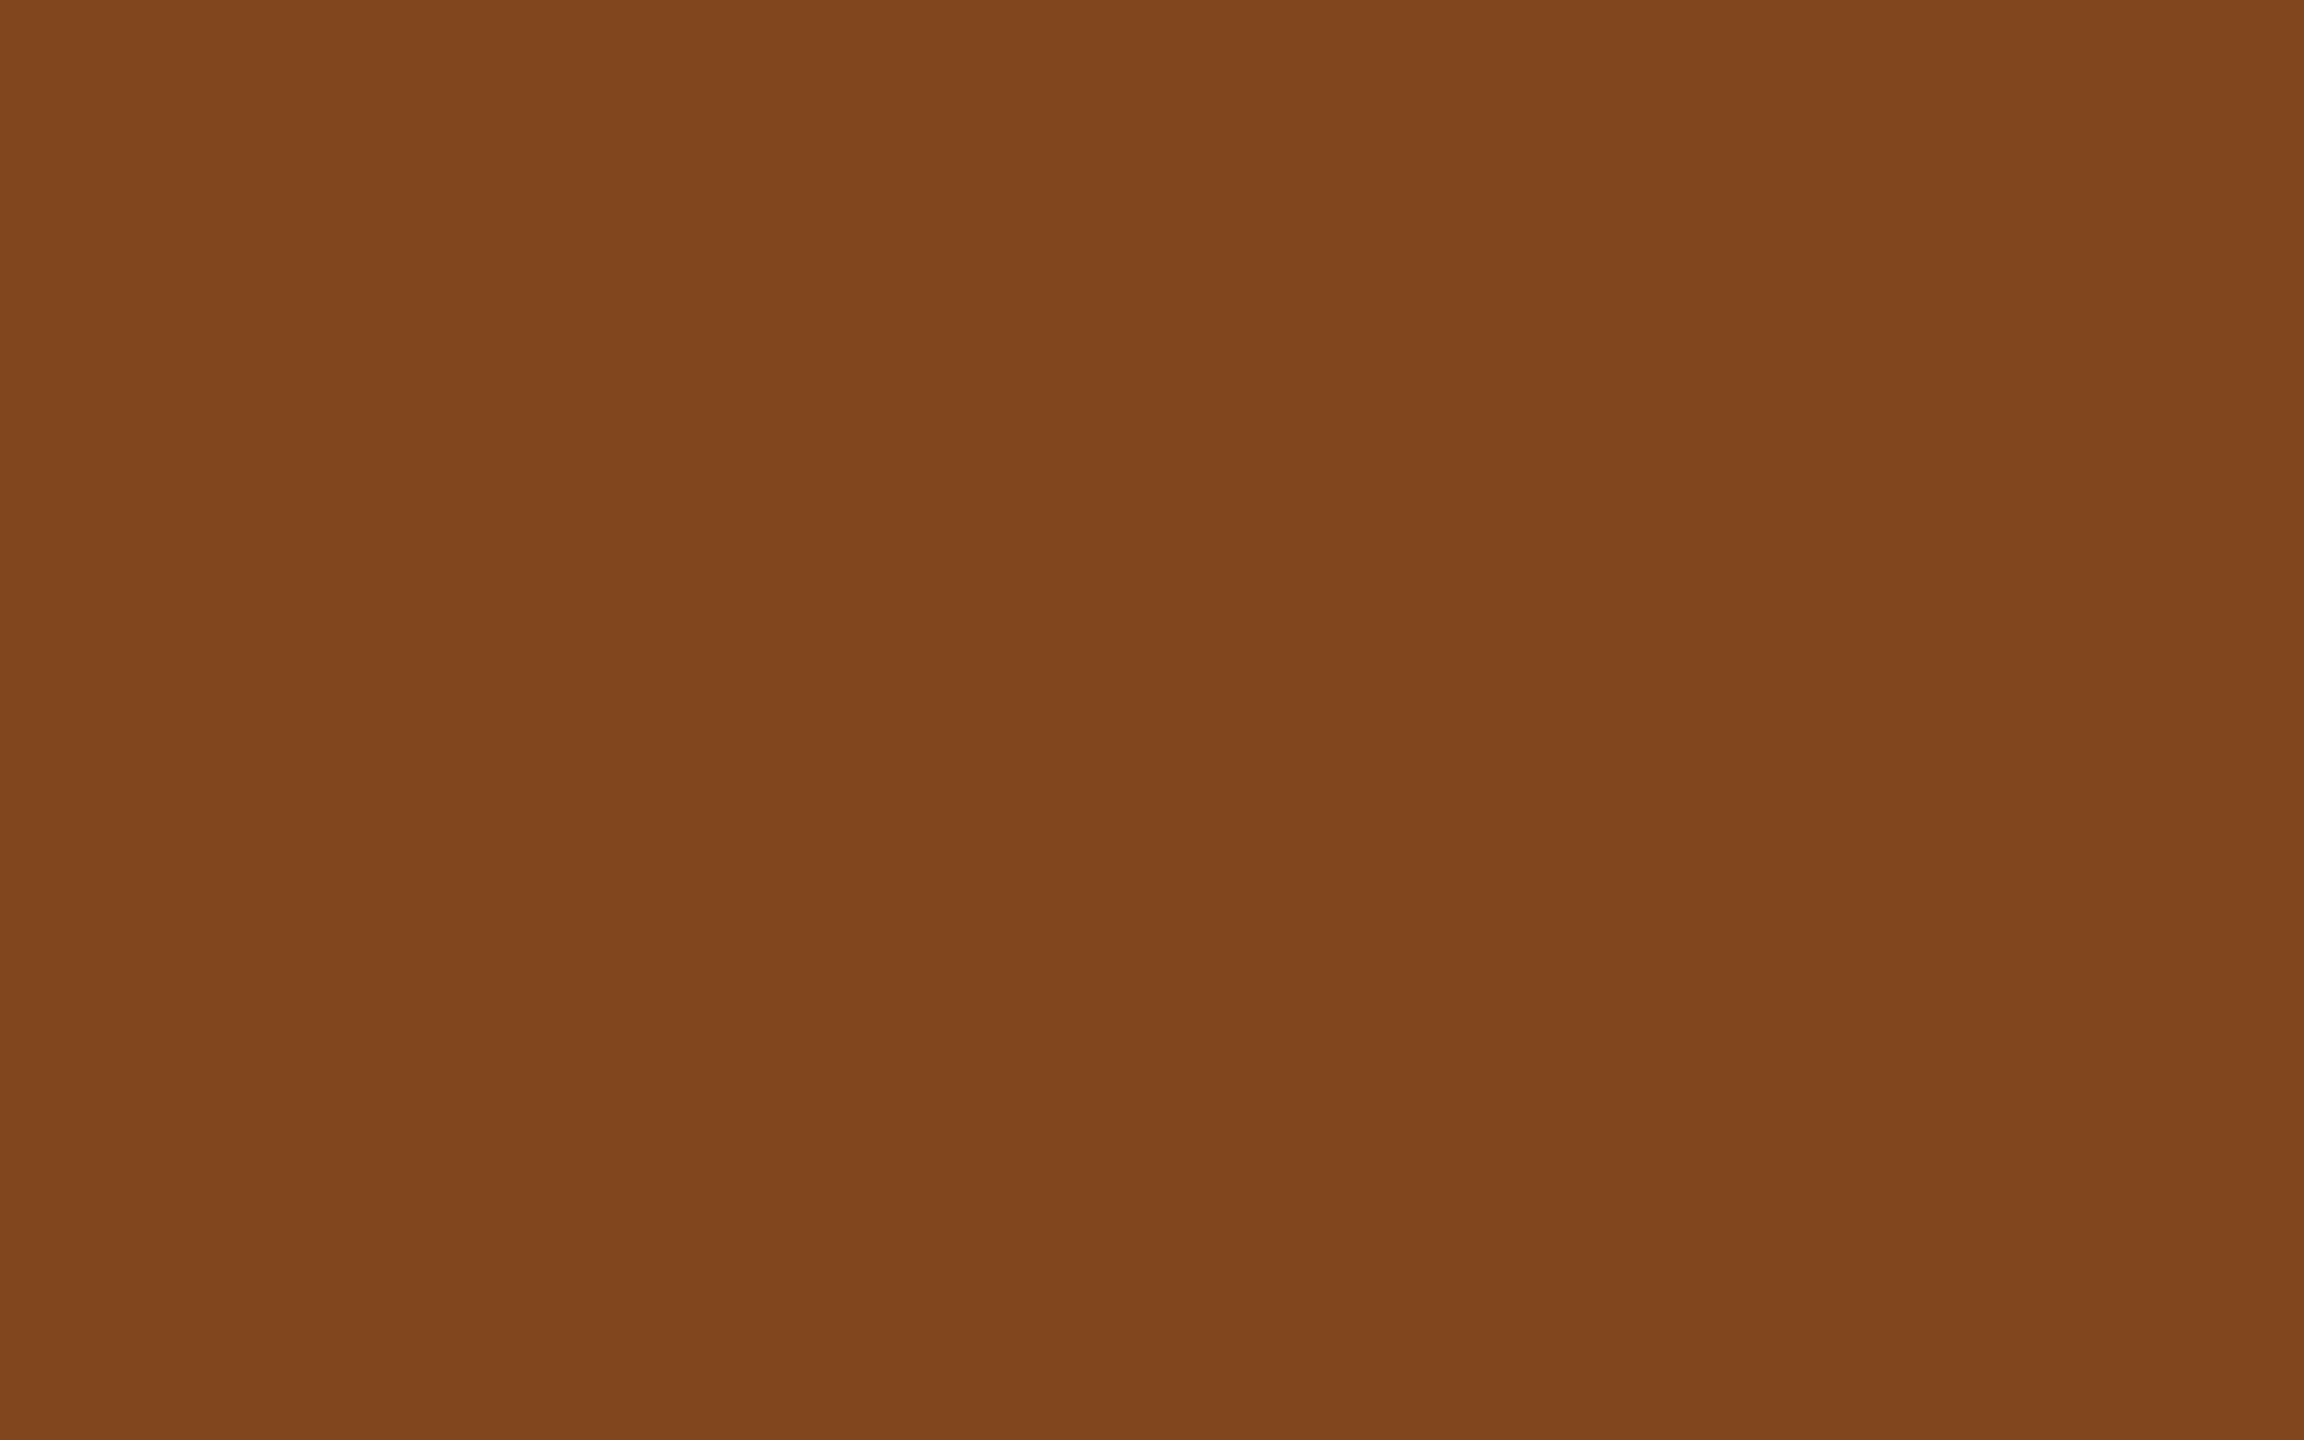 2304x1440 Russet Solid Color Background